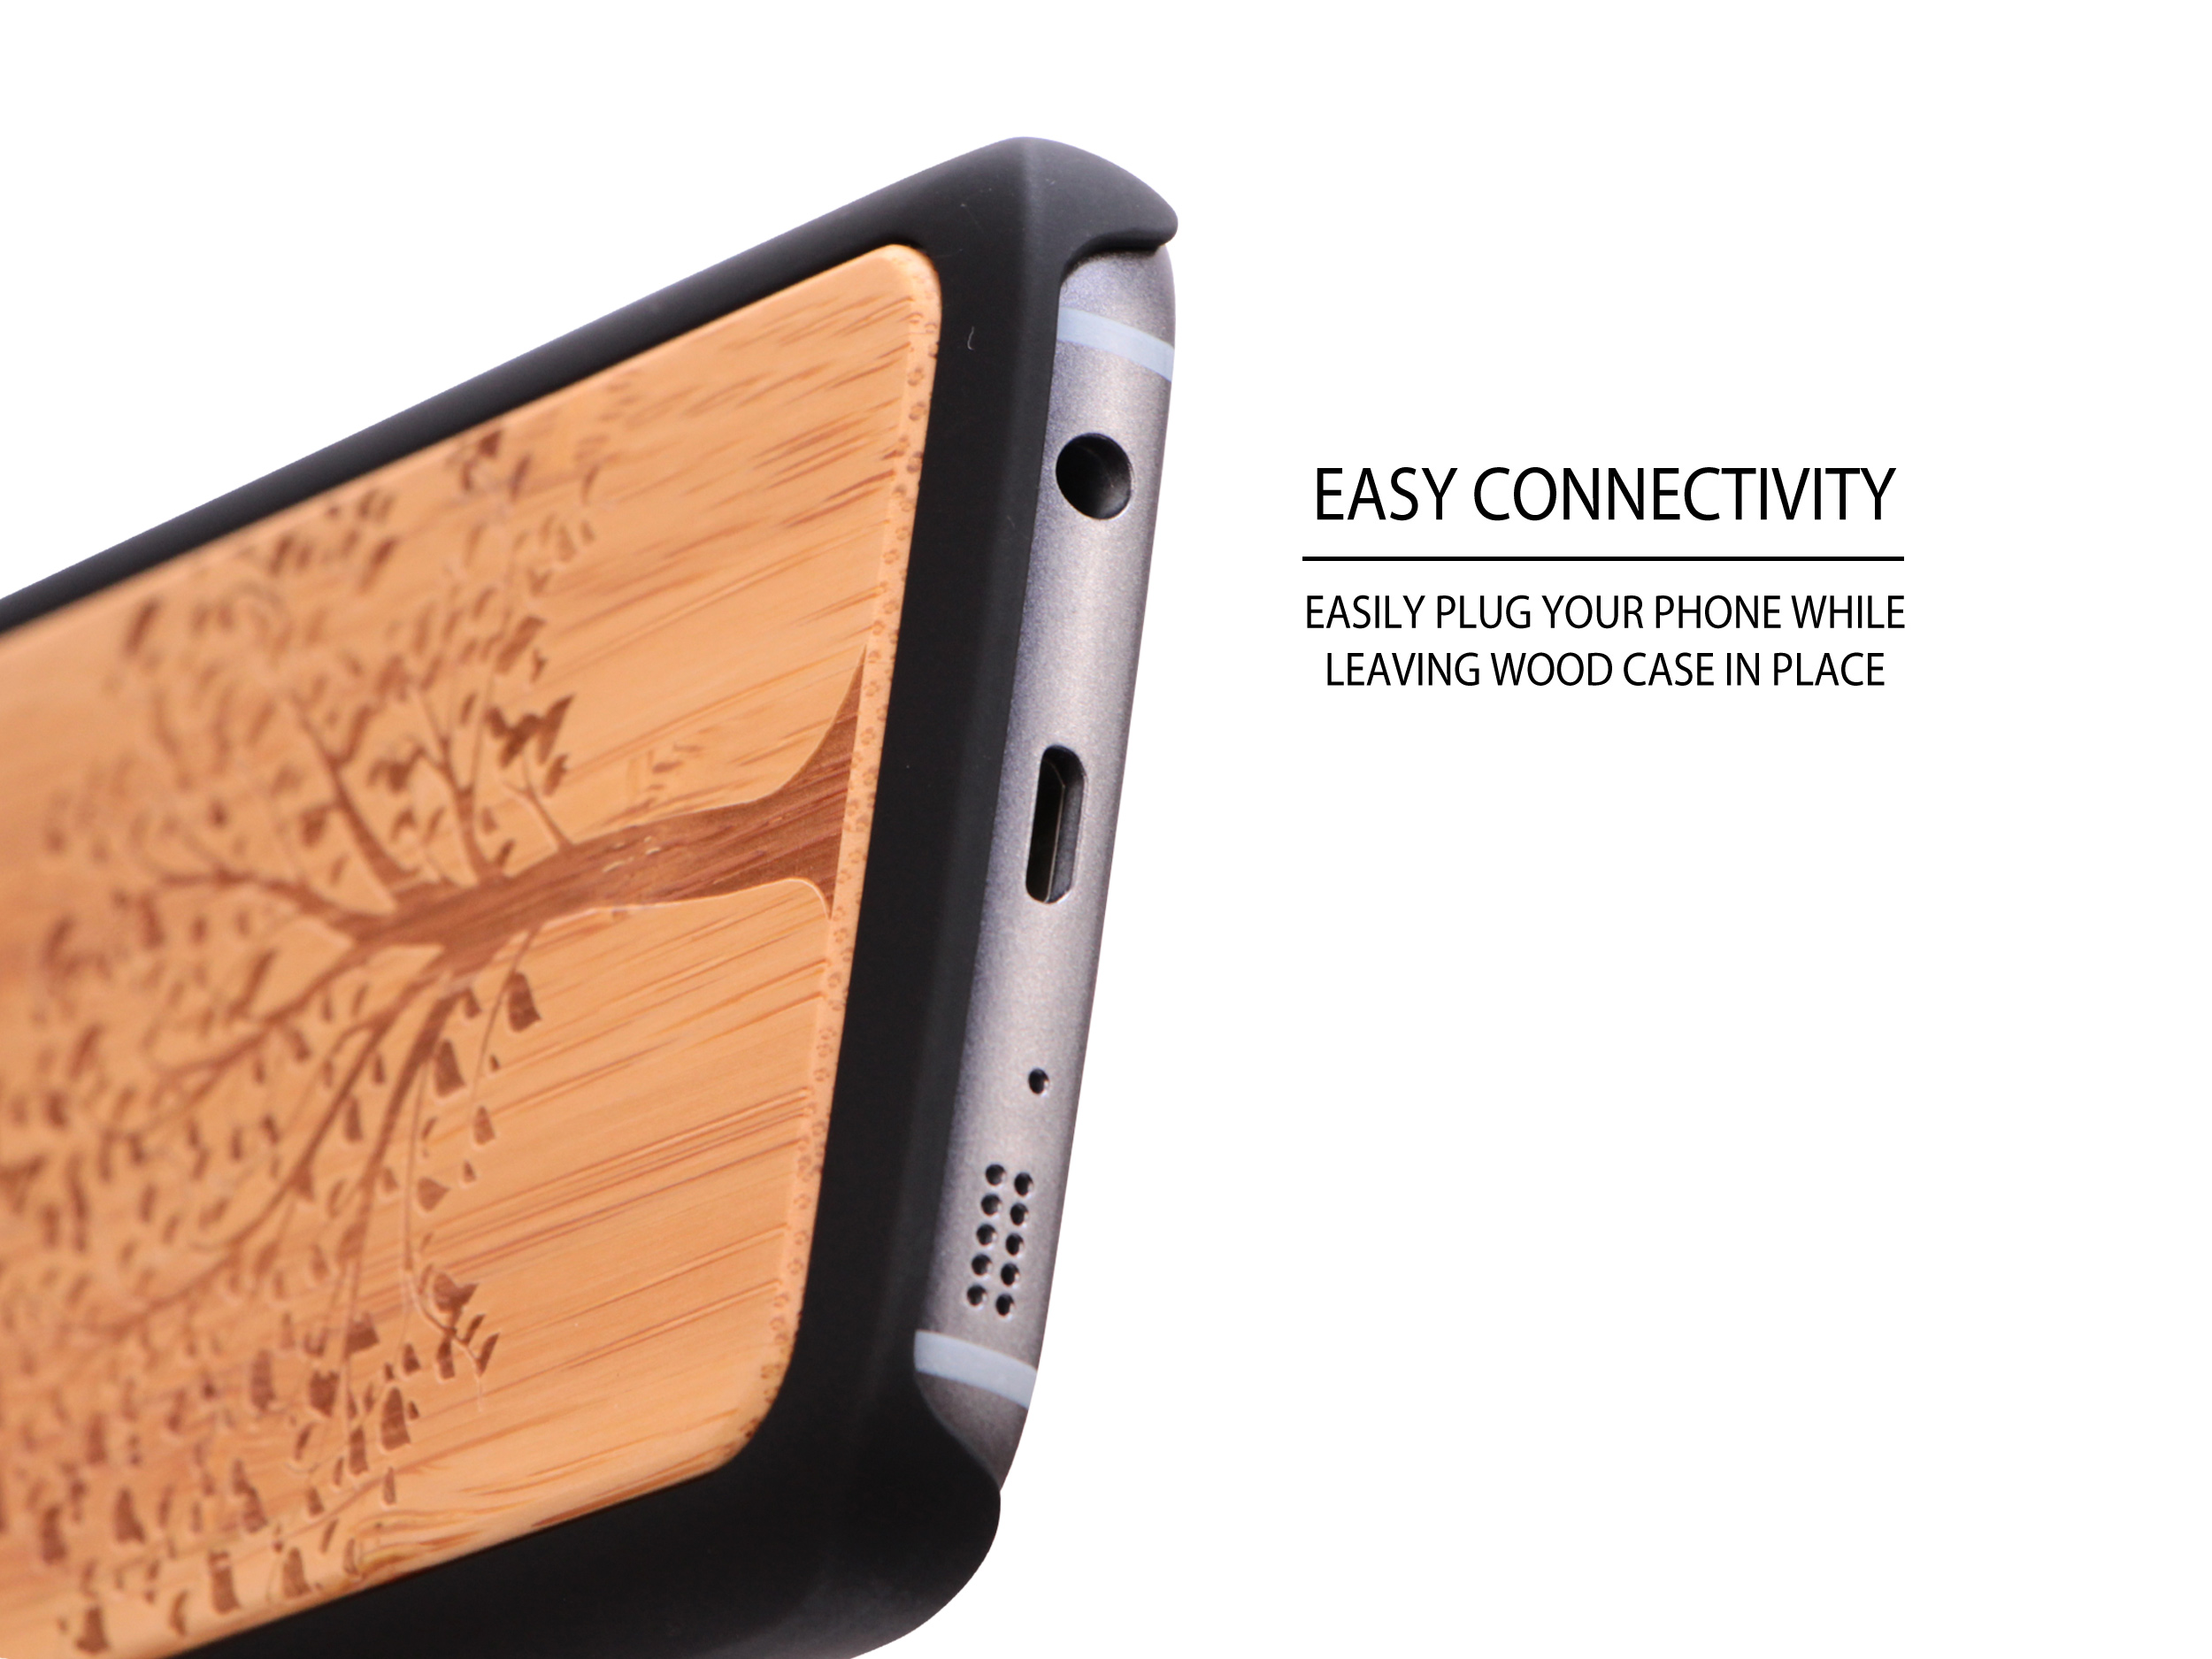 Samsung Galaxy S7 wood case tree socket